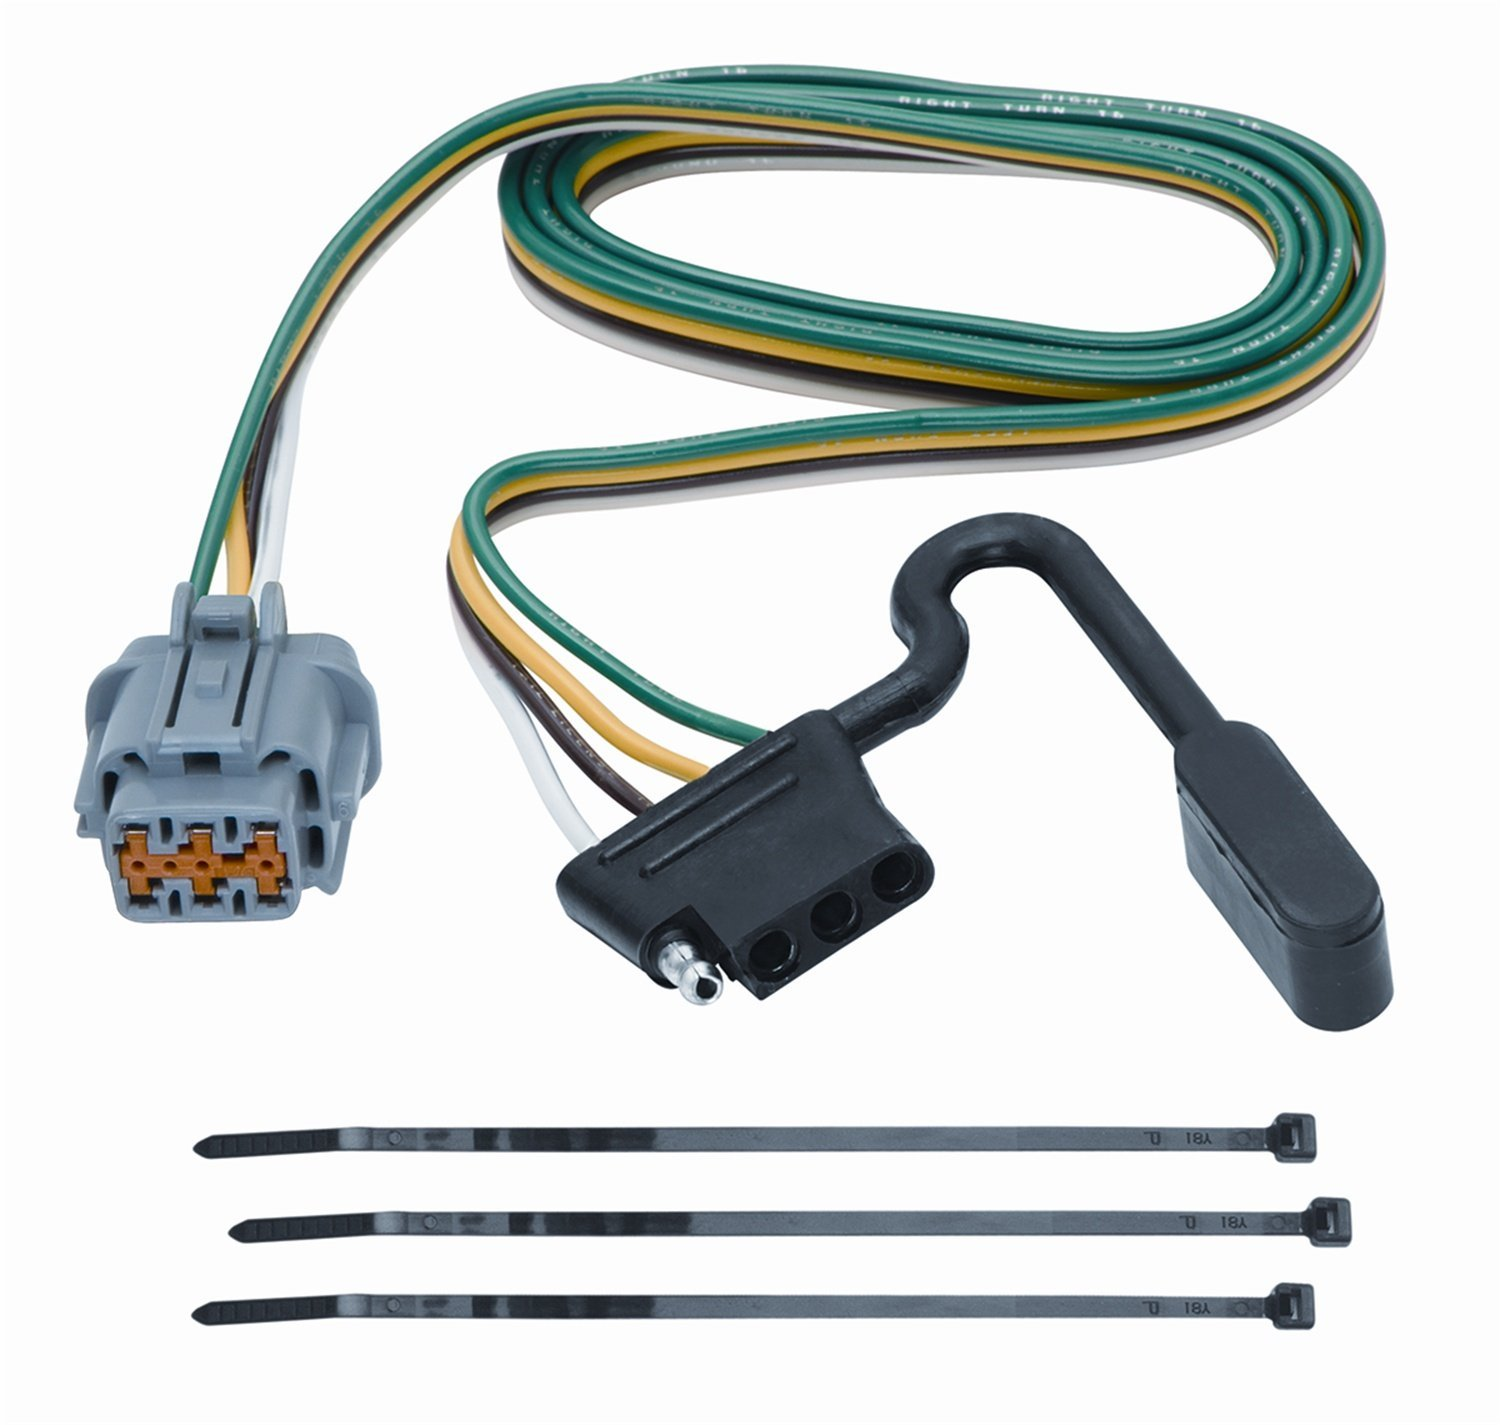 Tekonsha 118263 4-Flat Tow Harness Wiring Package, Xterra perfect wiring  Harness Vehicle Suzuki 20052007 118270 Pack 7Way package For originally  replacing ...